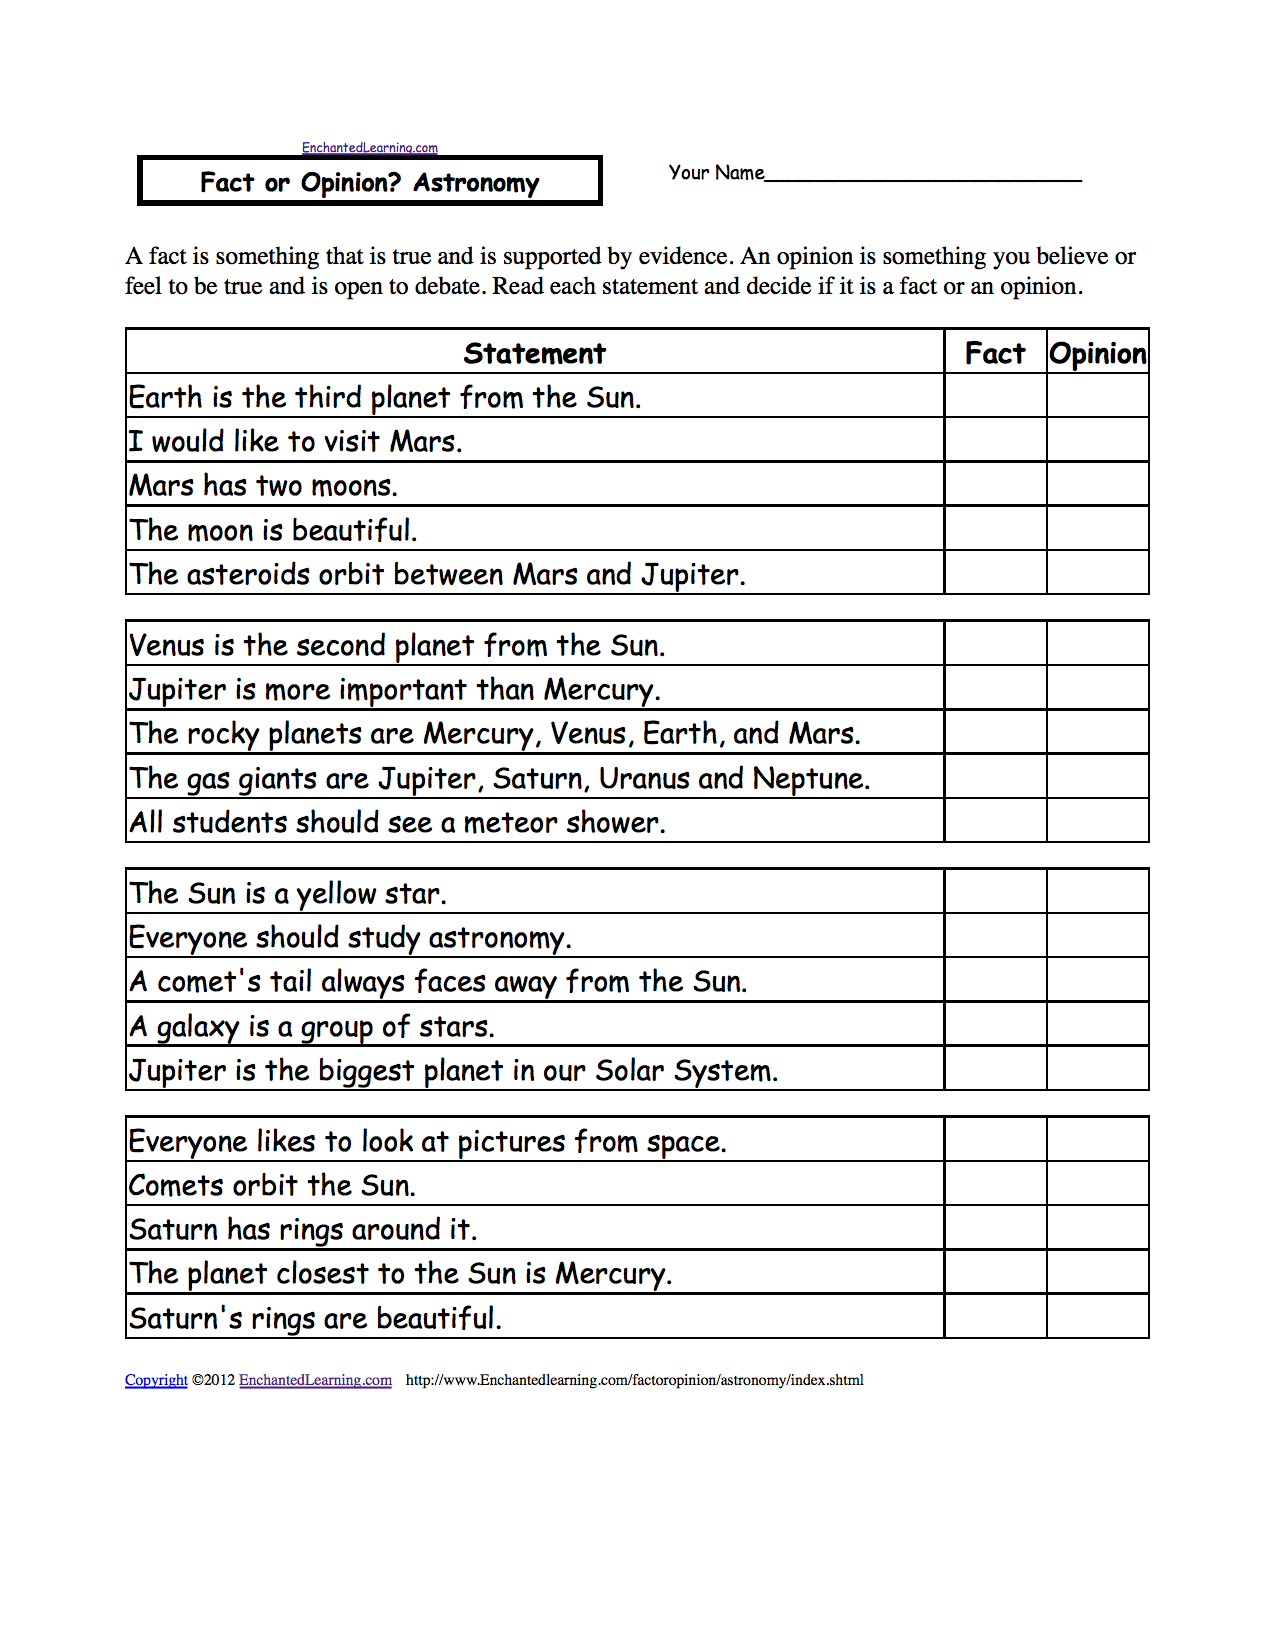 Fact or Opinion? Checkmark Worksheets to Print - EnchantedLearning.com